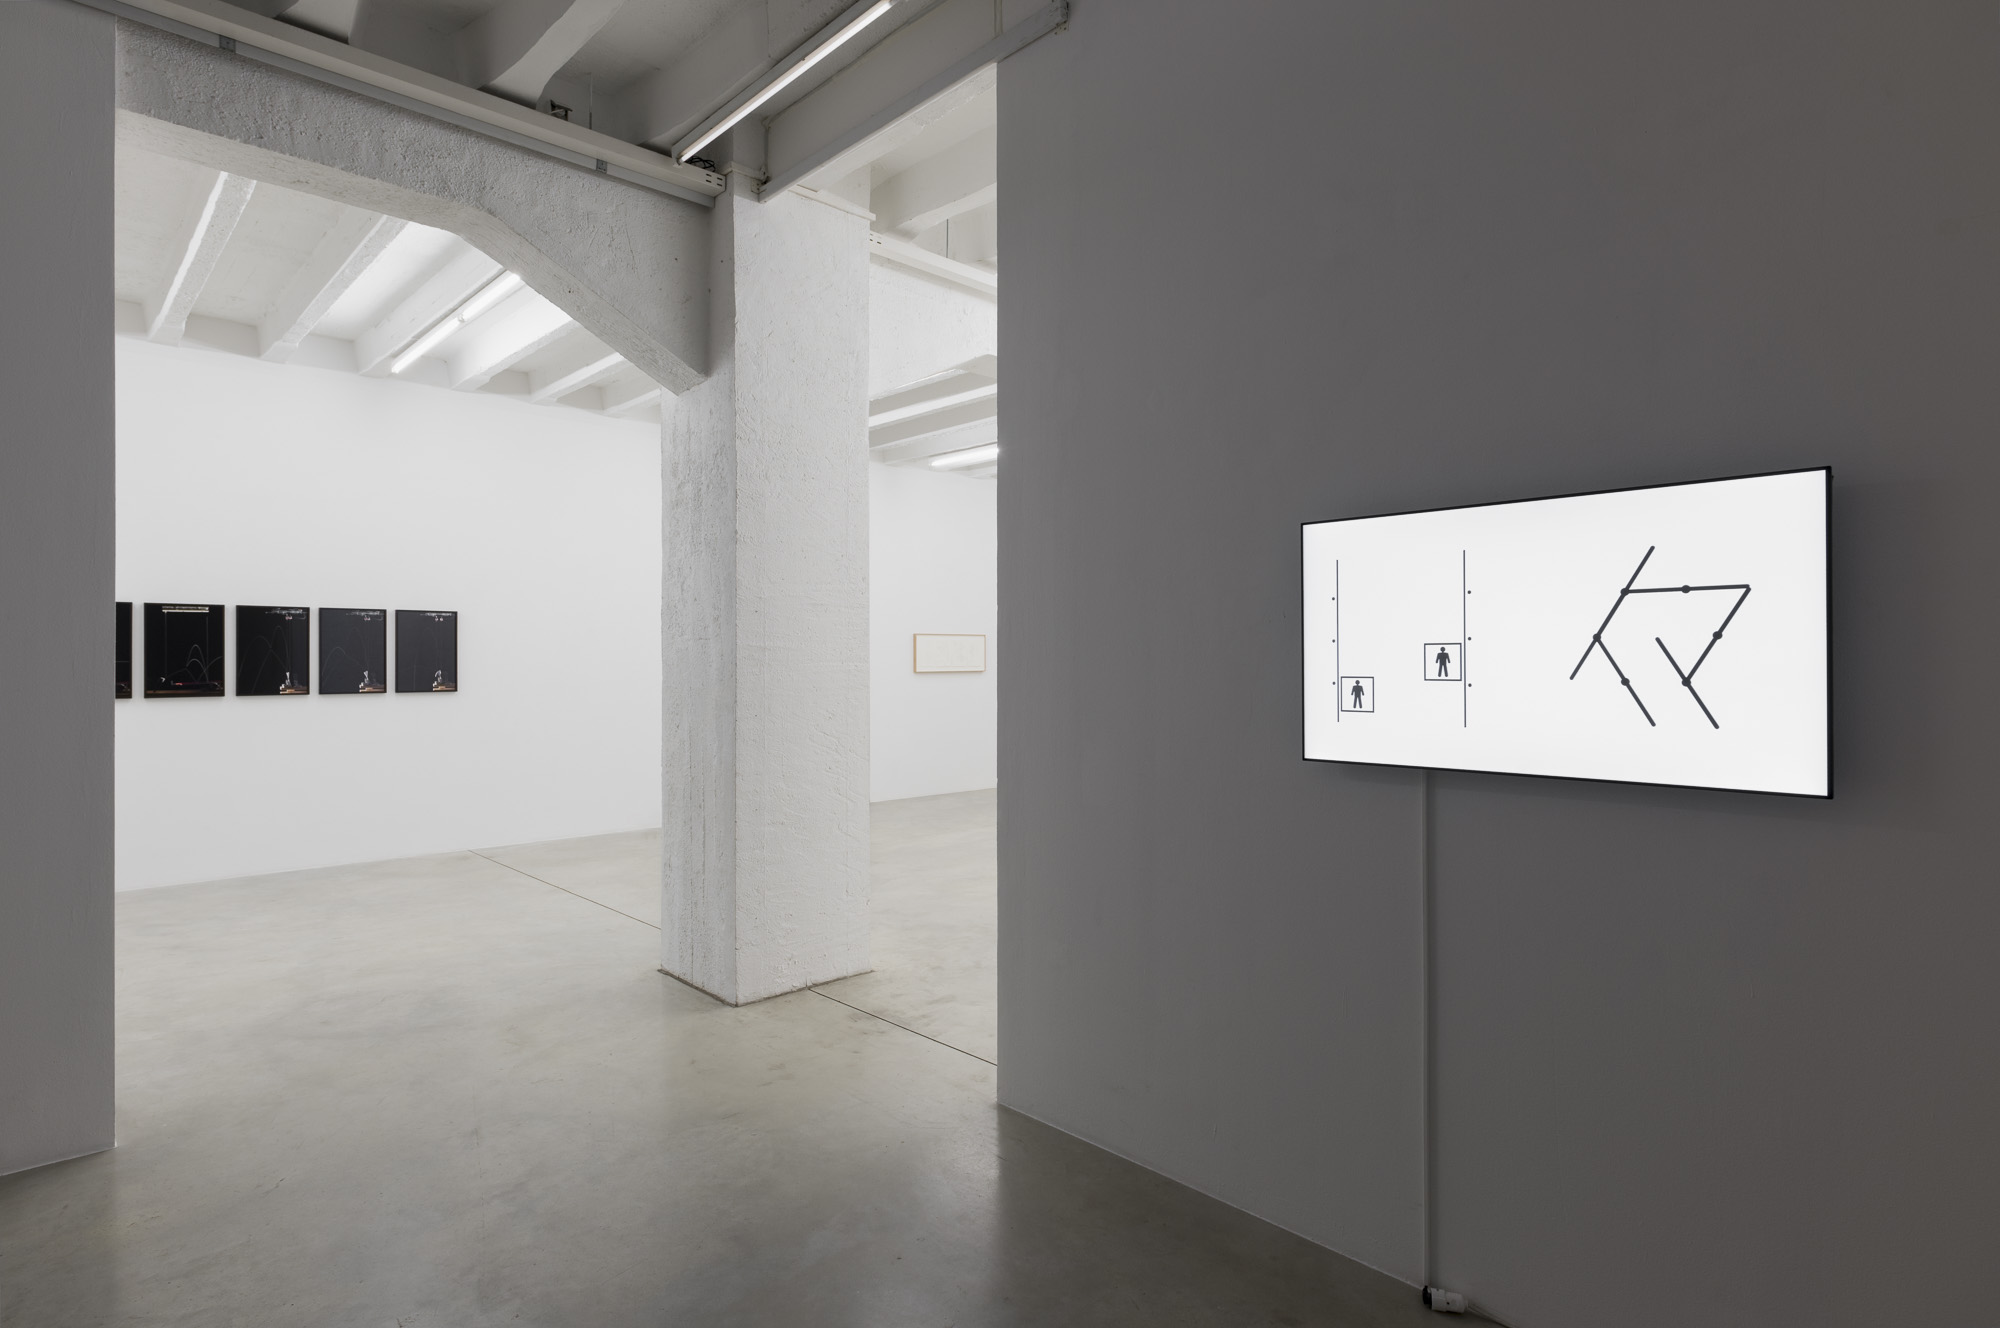 Attila Csörgő, Ursuppe, exhibition view, Gregor Podnar, Berlin, 2018. Photo: Marcus Schneider